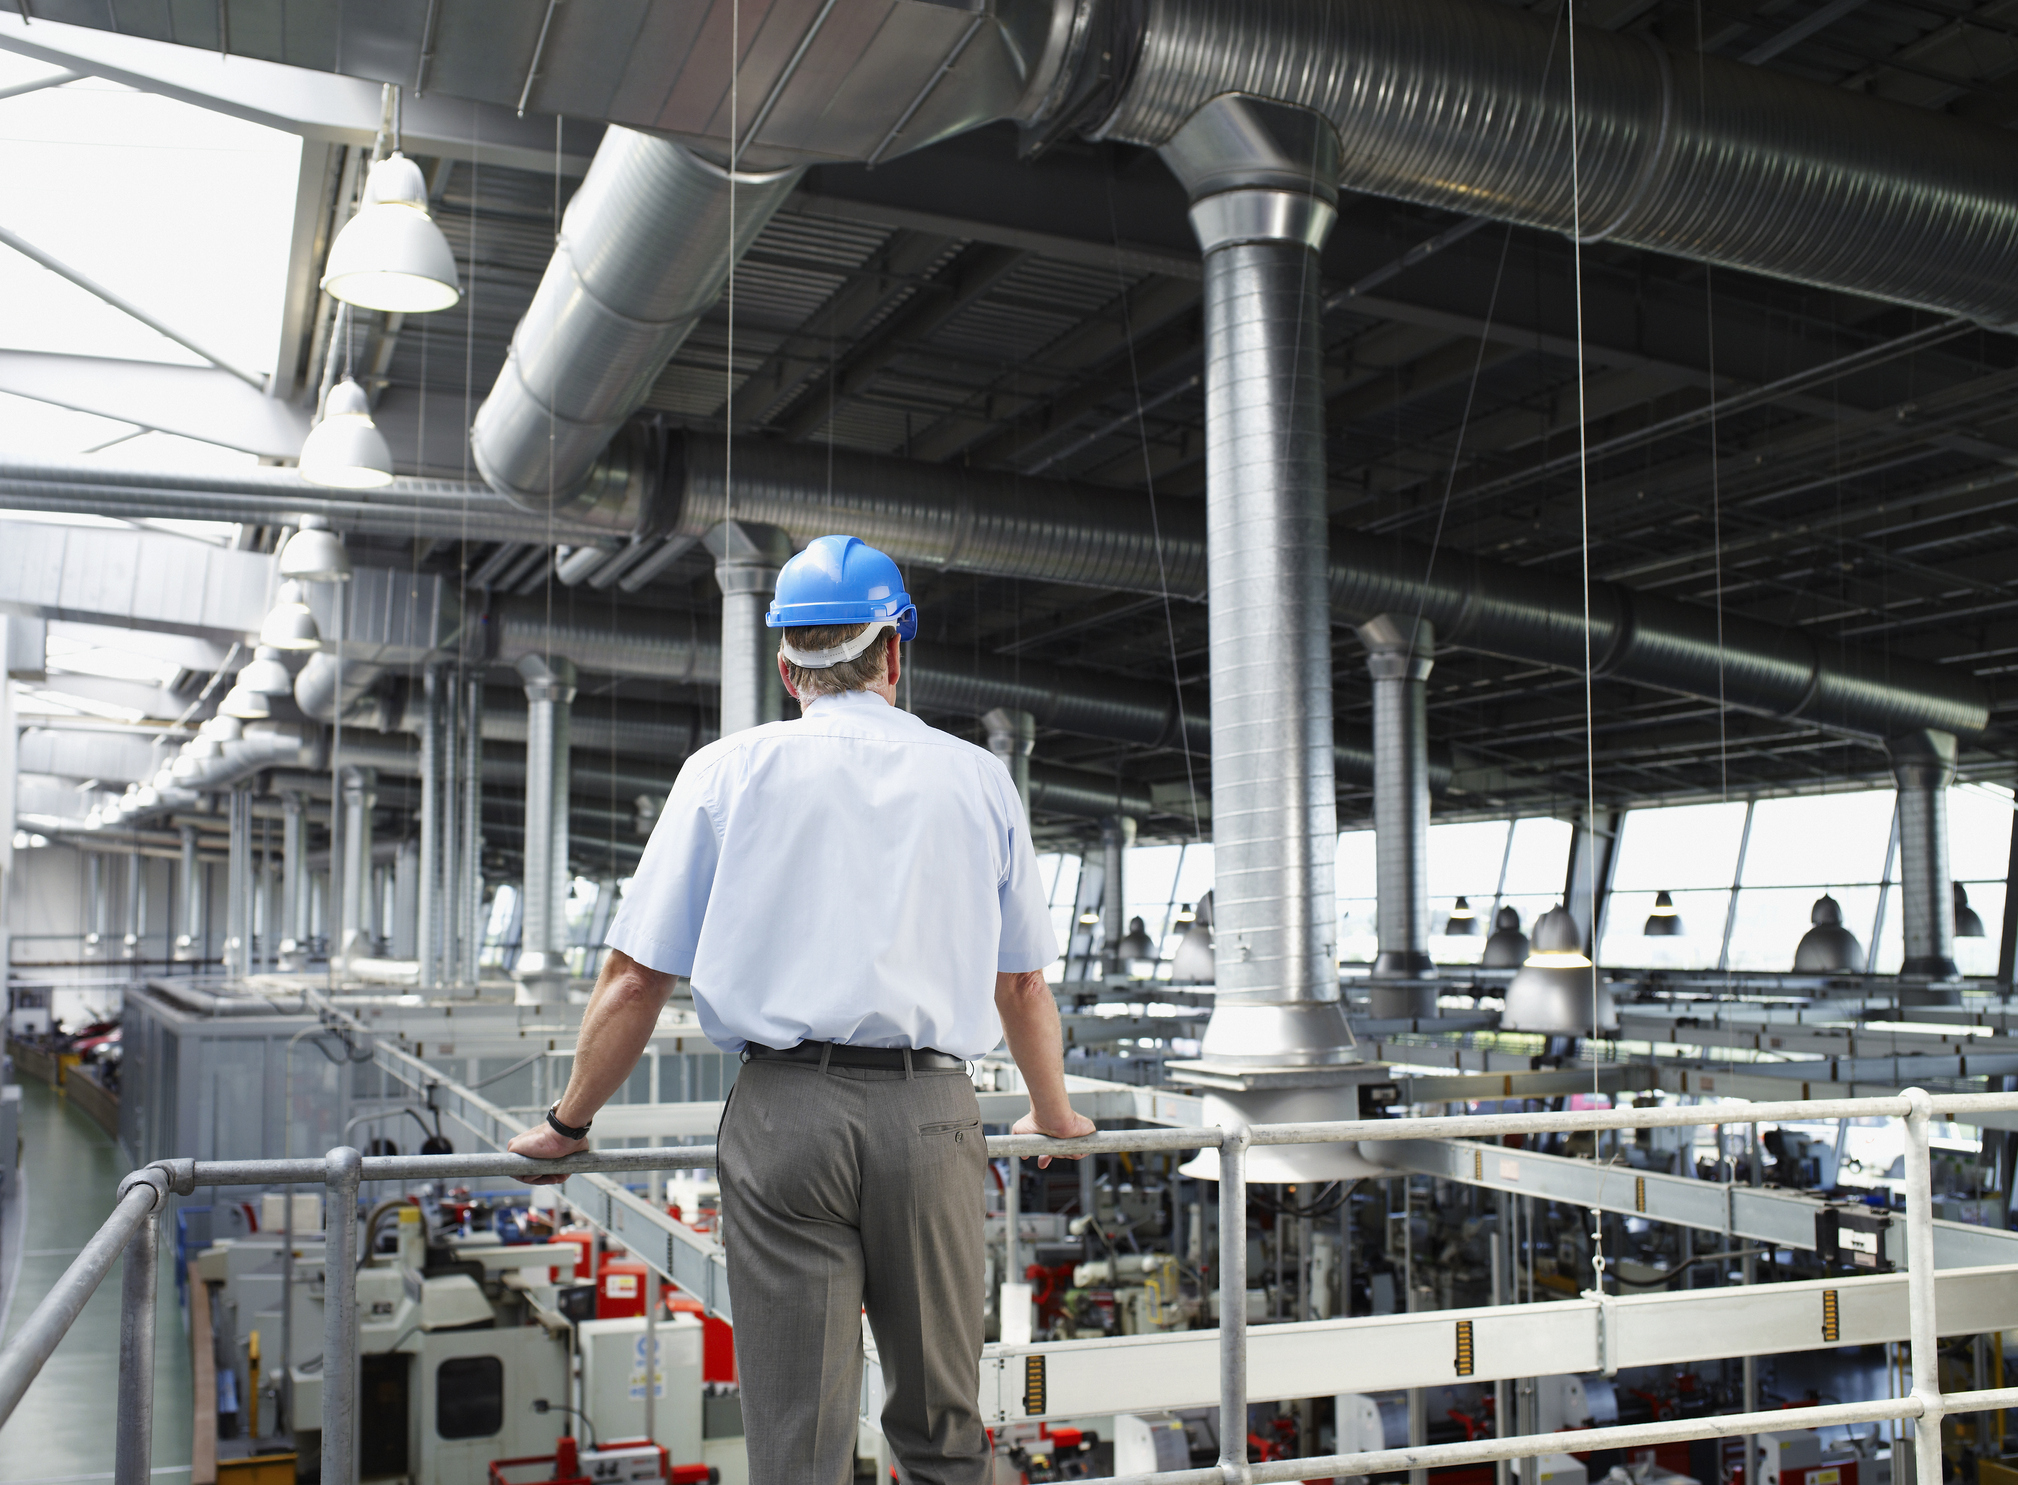 COVID-19 Health & Safety at Work — Guidelines for Manufacturers